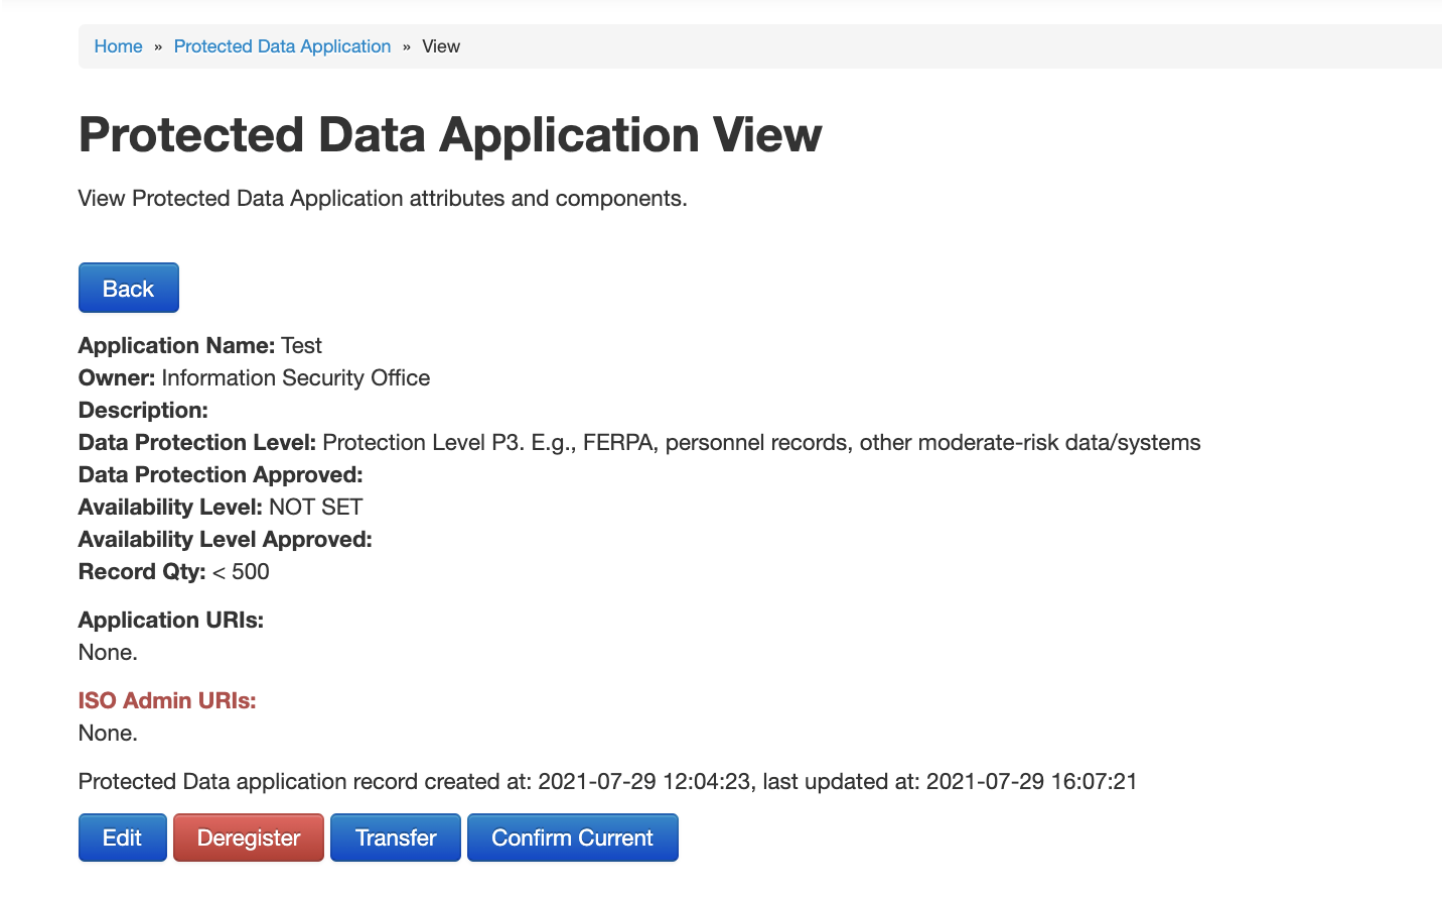 Protected Data Application View